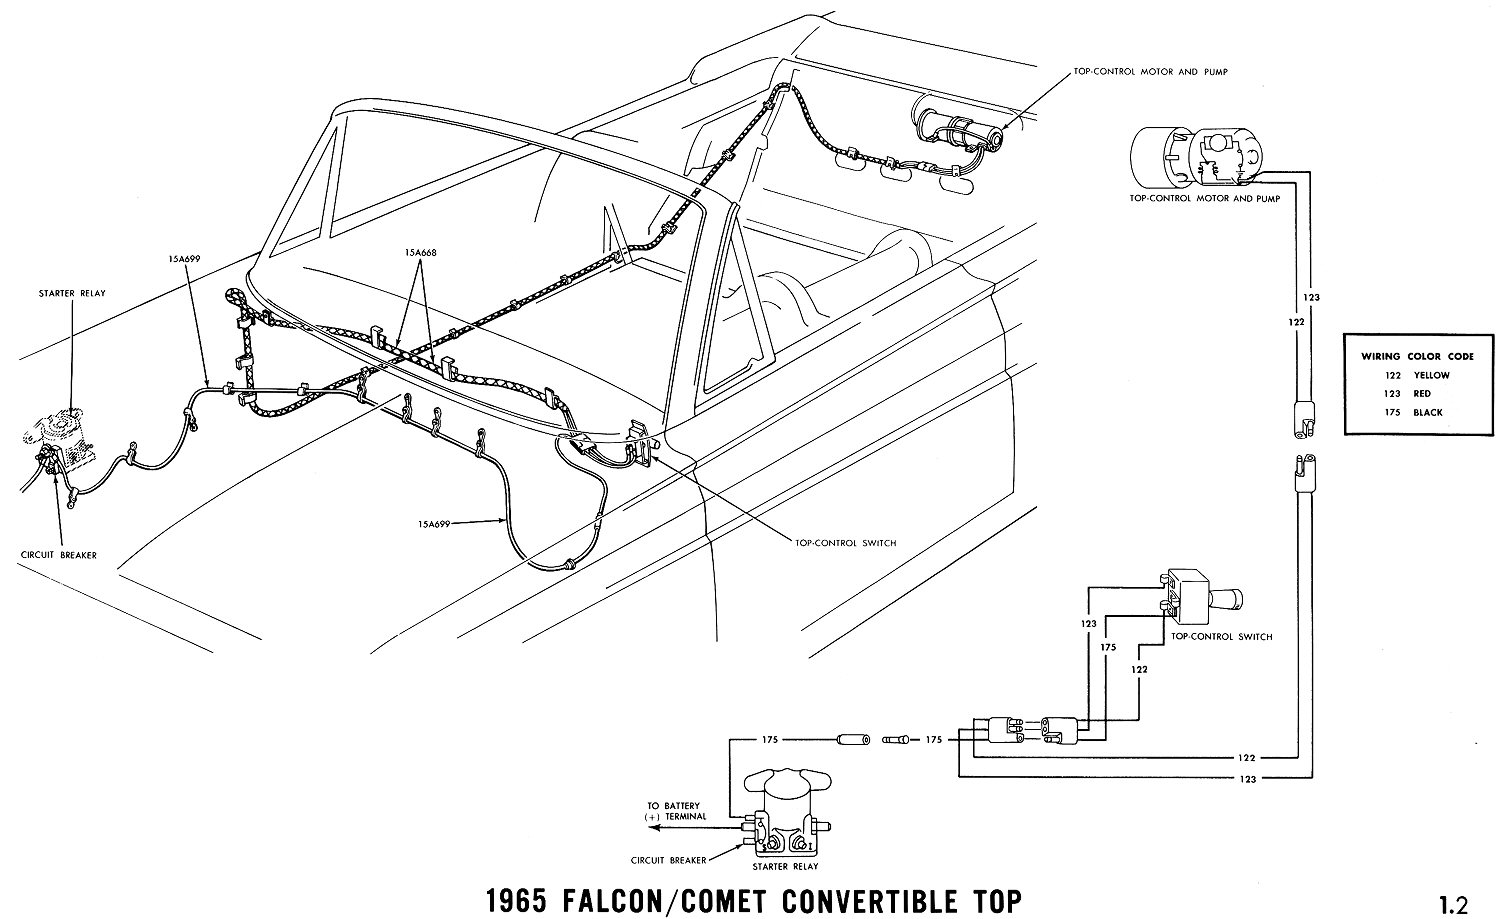 1965 mustang wiring diagrams average joe restoration share this